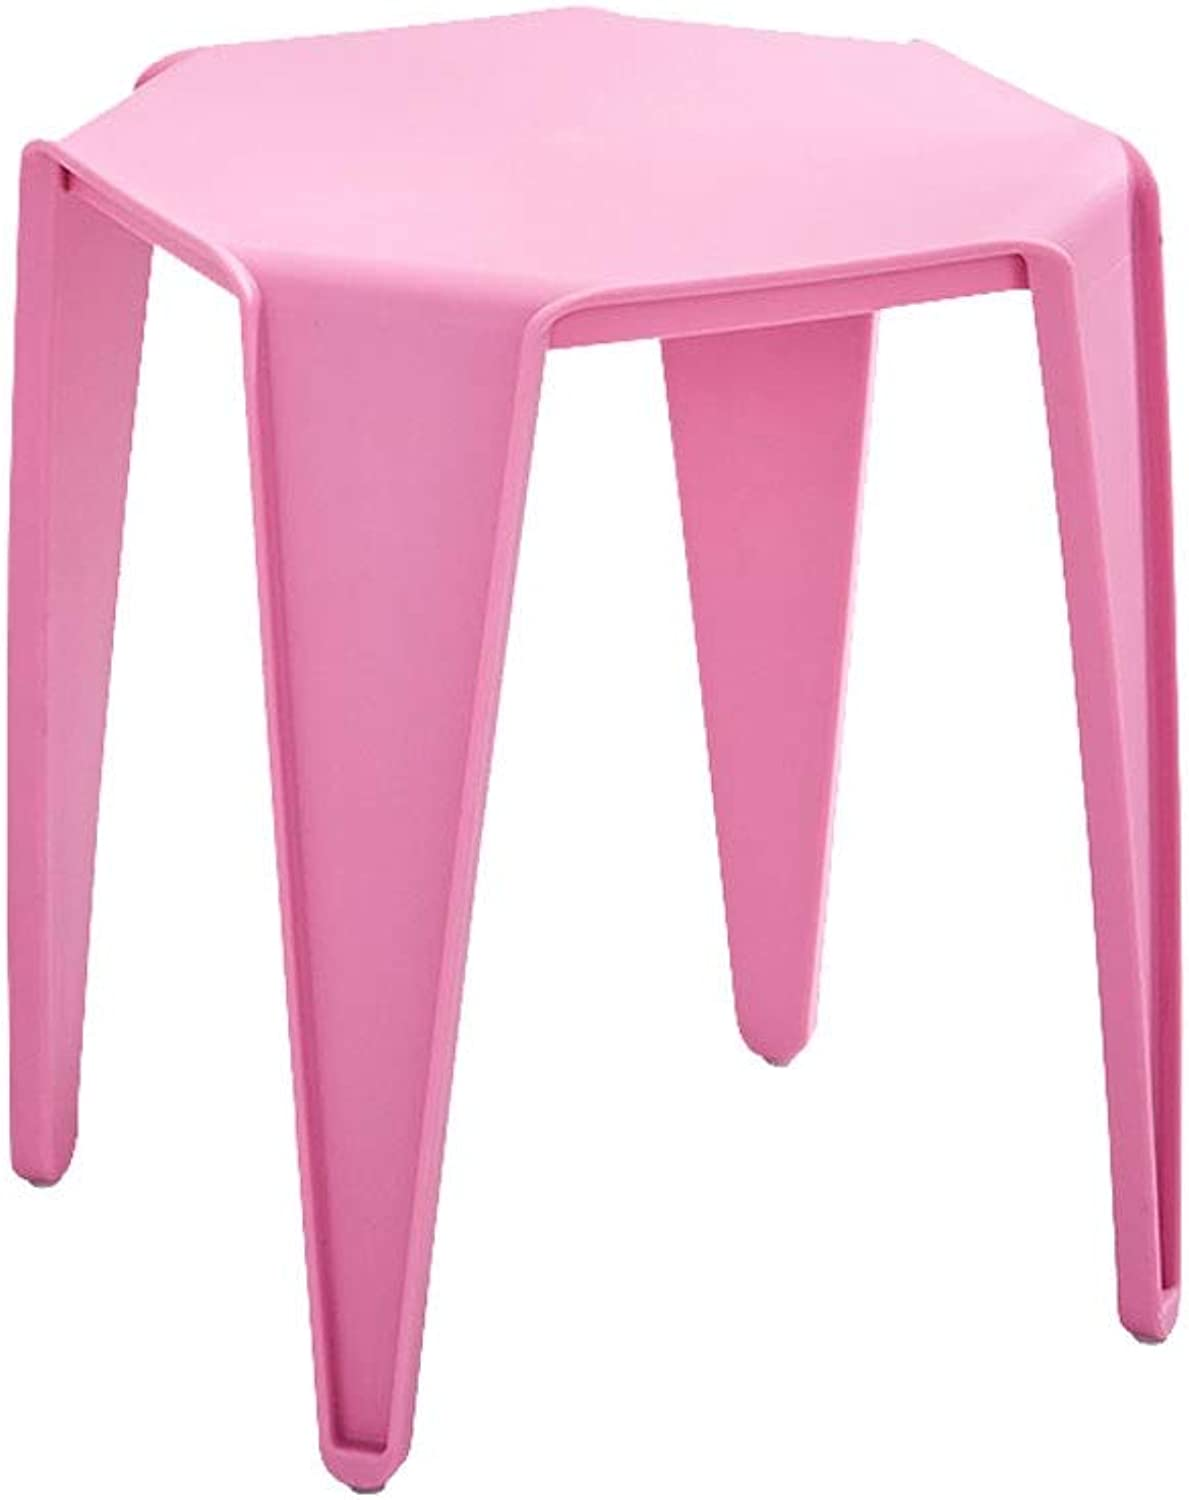 A+ Plastic Round Dining Table Stool,Hair Salon Bar Chair One-Piece Molding, Home Simple Four Foot Stool,No Need to Install - 2-Piece Set (color   Pink)